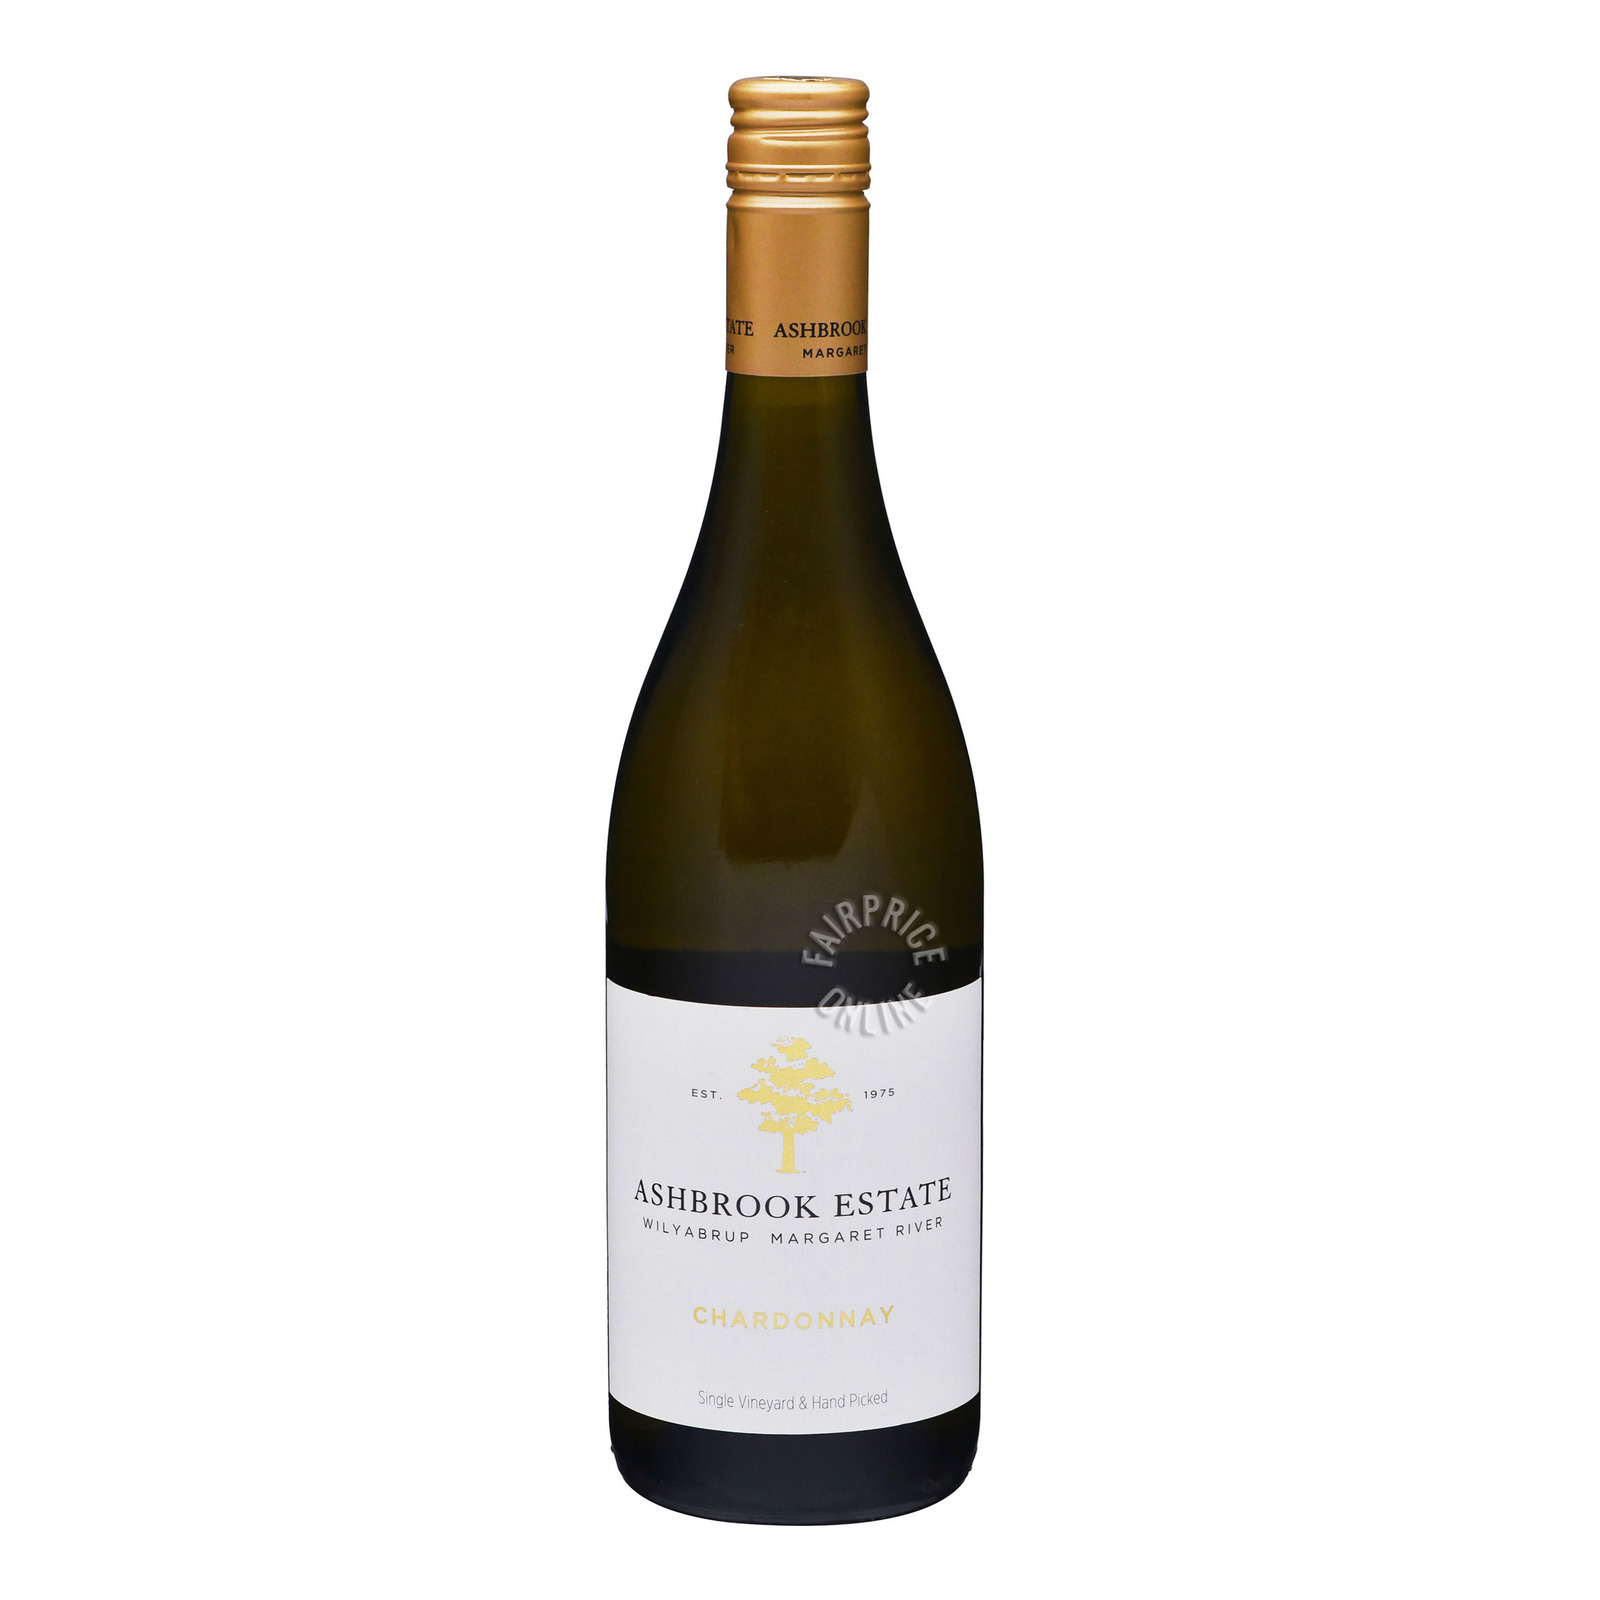 Ashbrook Estate White Wine - Chardonnay